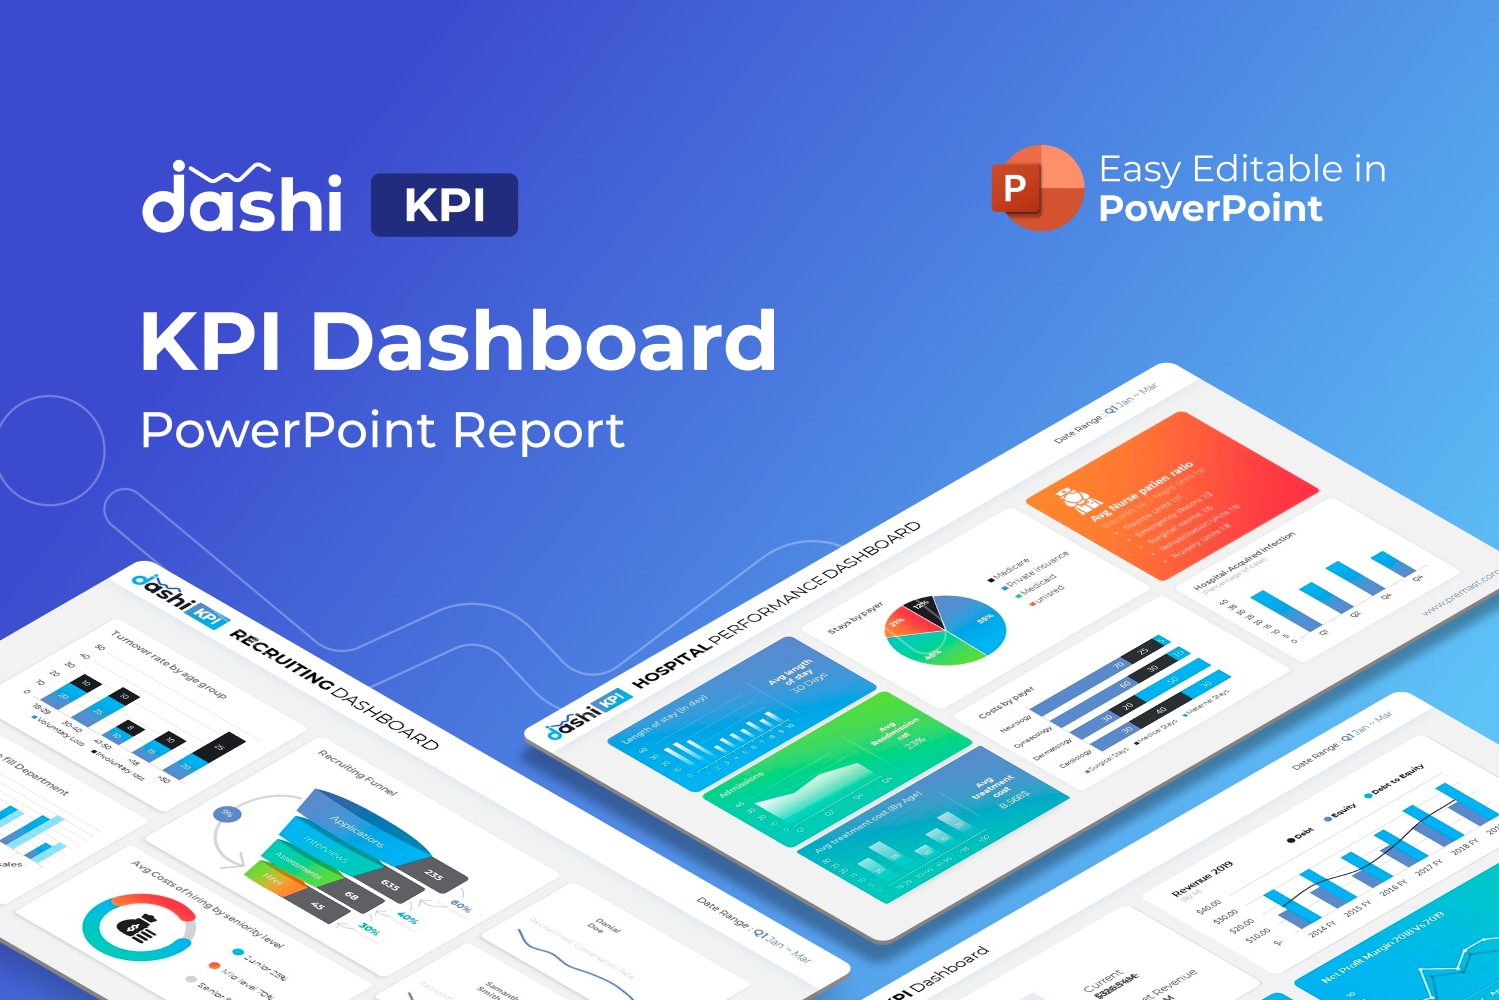 Szablon PowerPoint Dashi KPI – Dashboard Report Presentation #122232